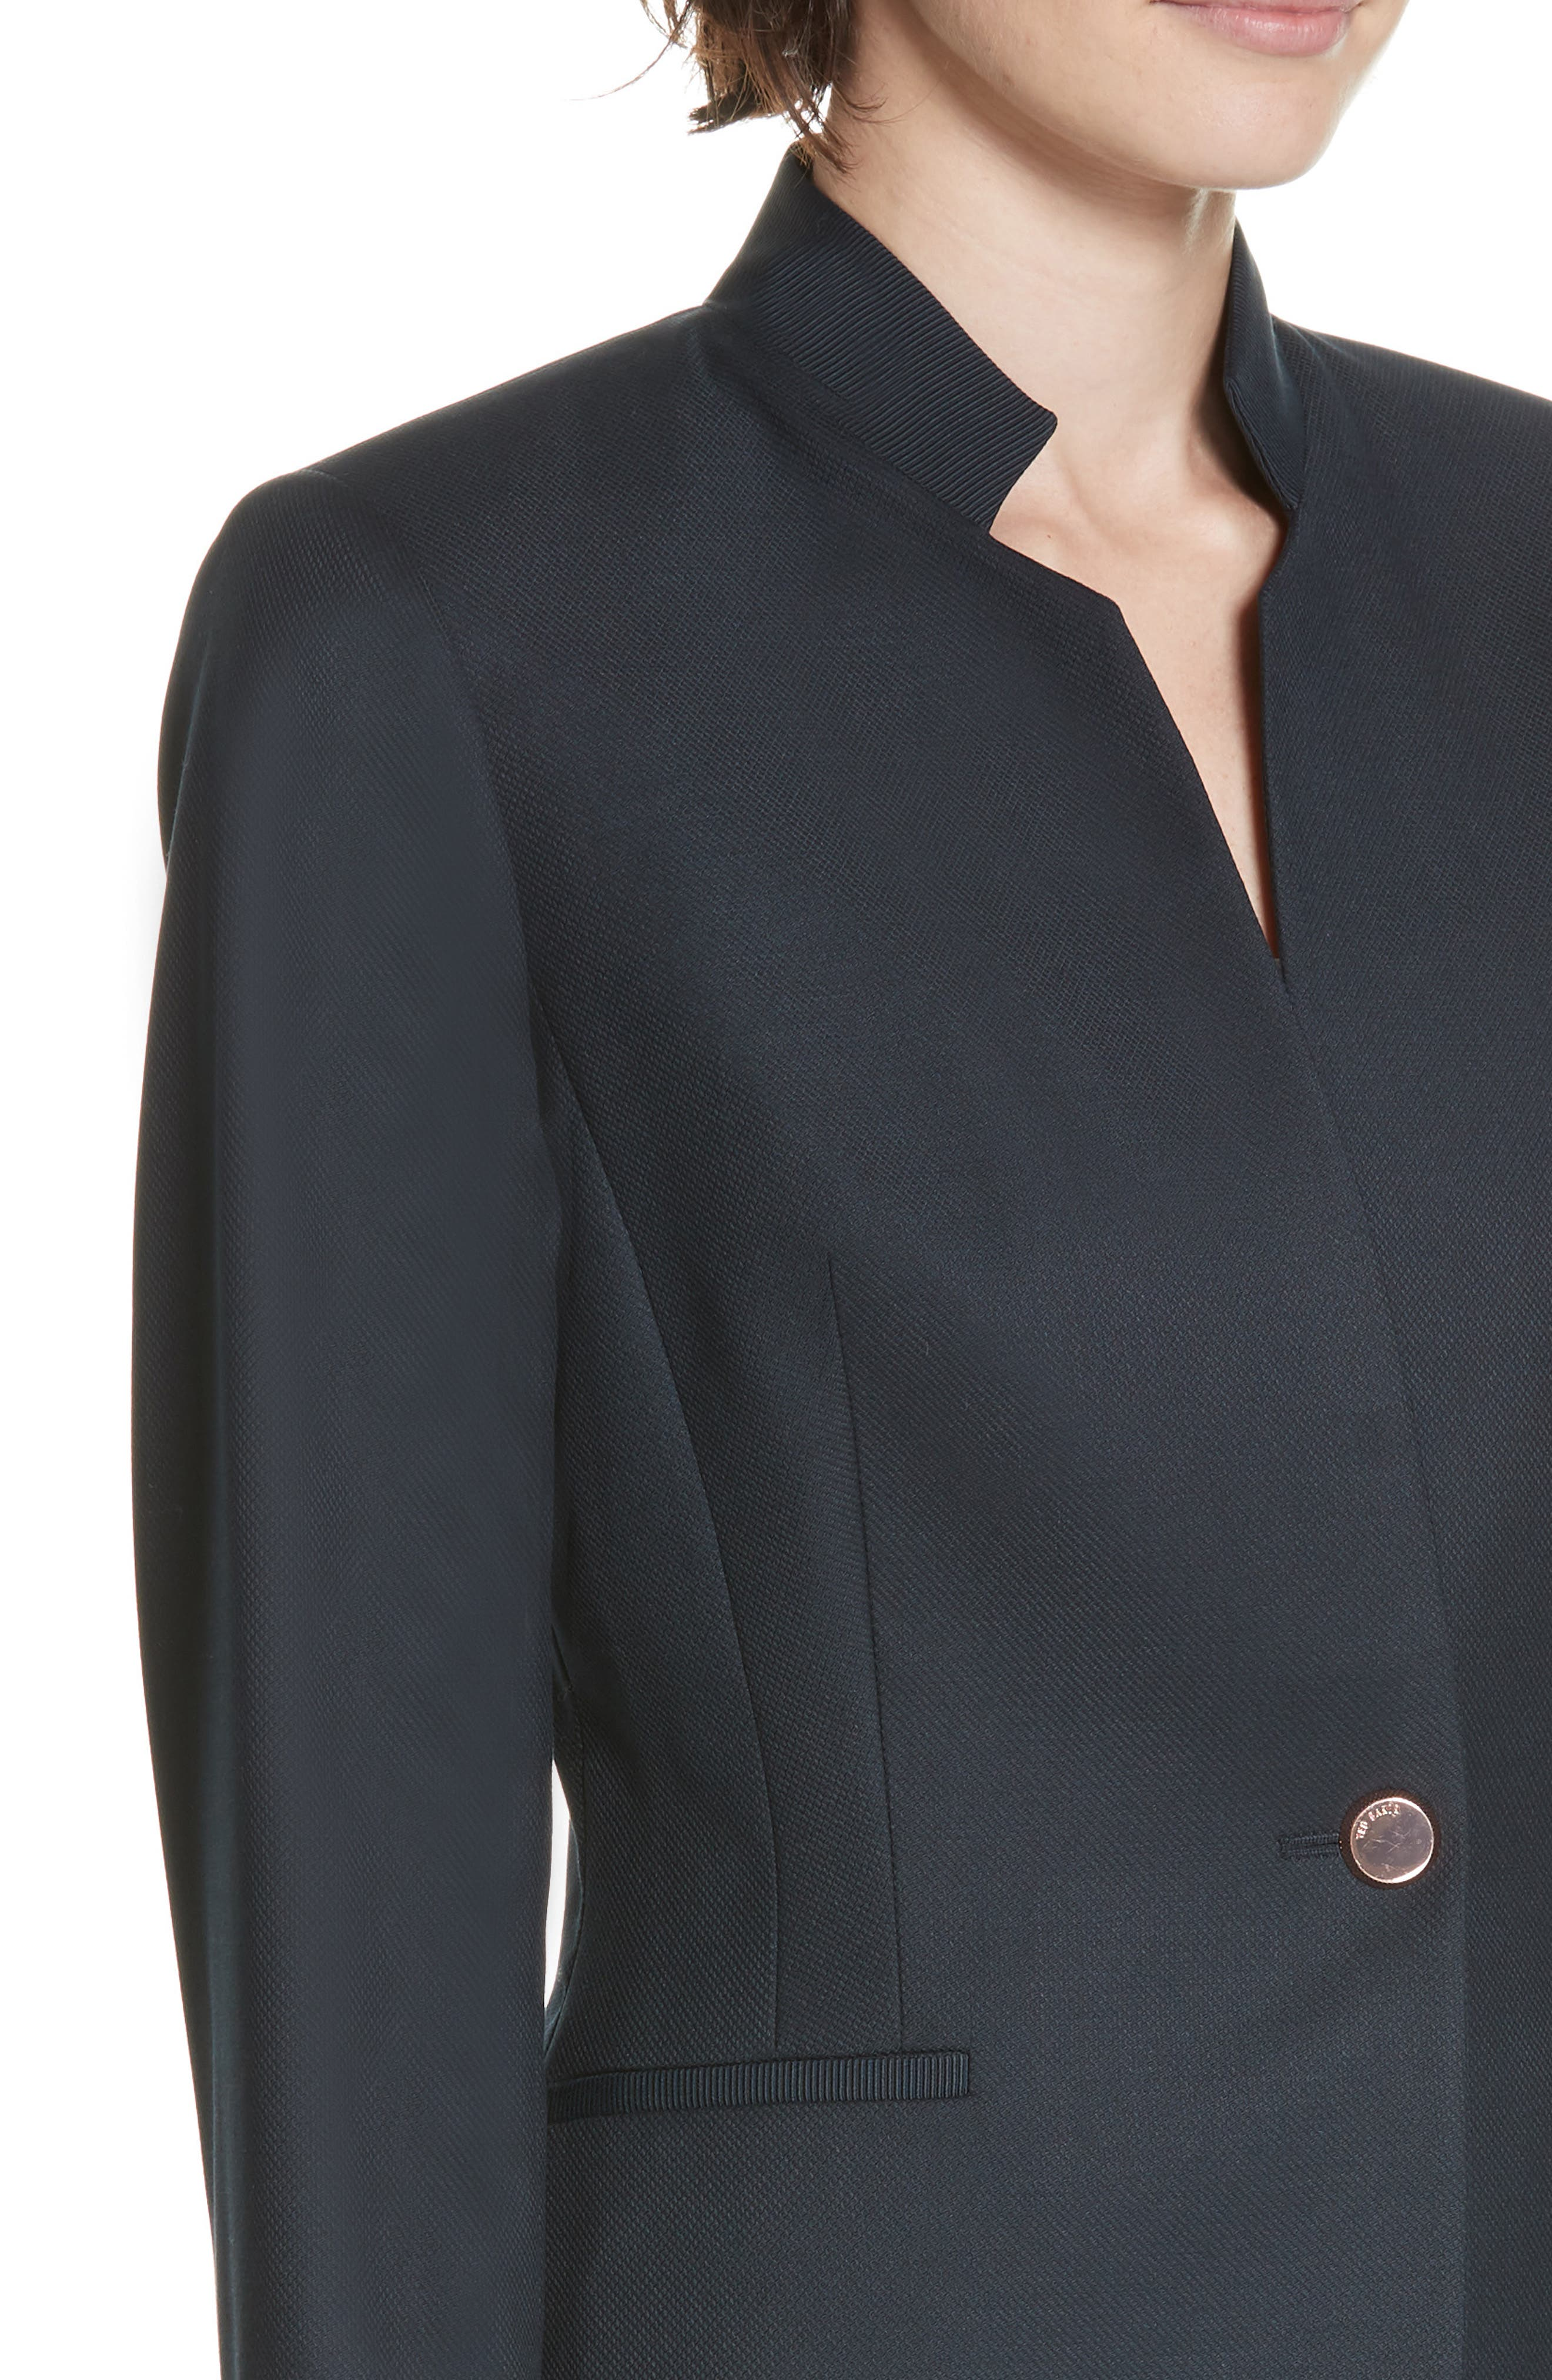 Ted Working Title Rivaa Tailored Jacket,                             Alternate thumbnail 4, color,                             DARK BLUE